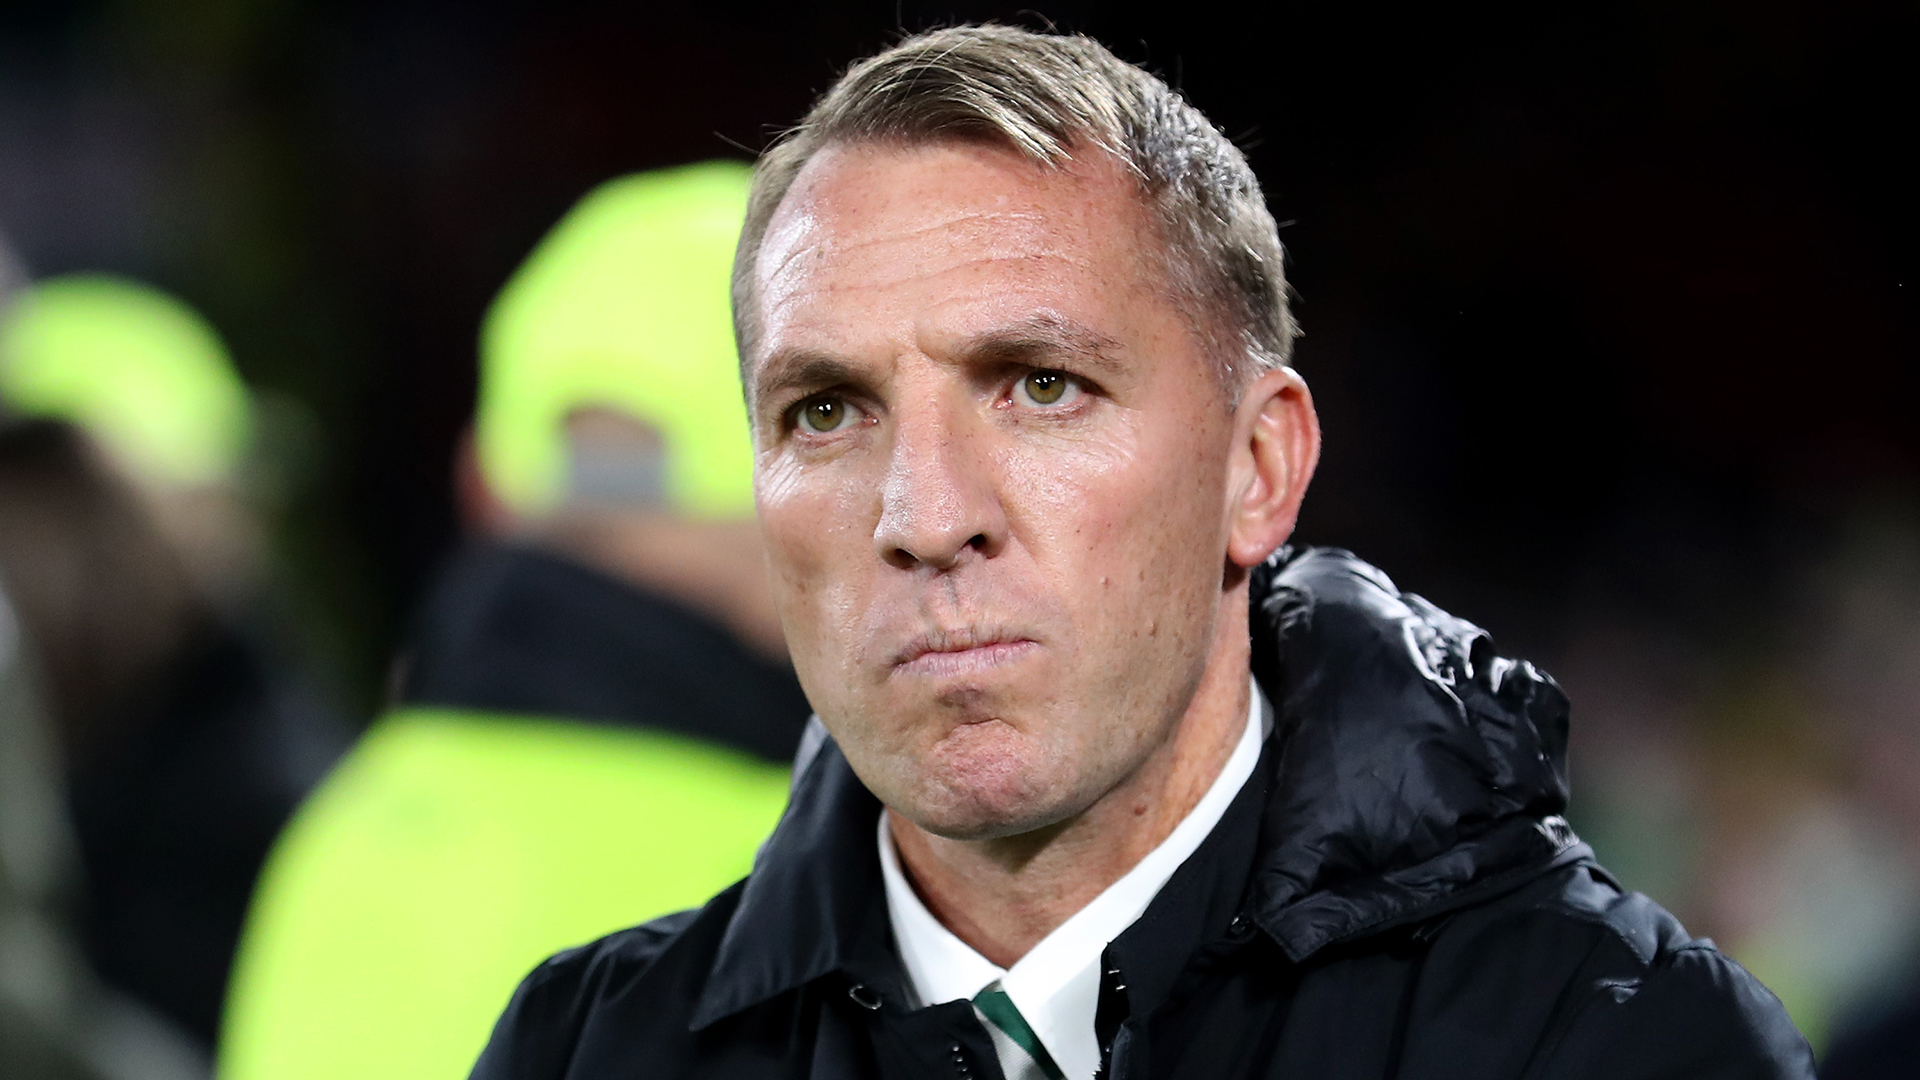 Brendan Rodgers' Scotland house burgled in wake of Celtic departure